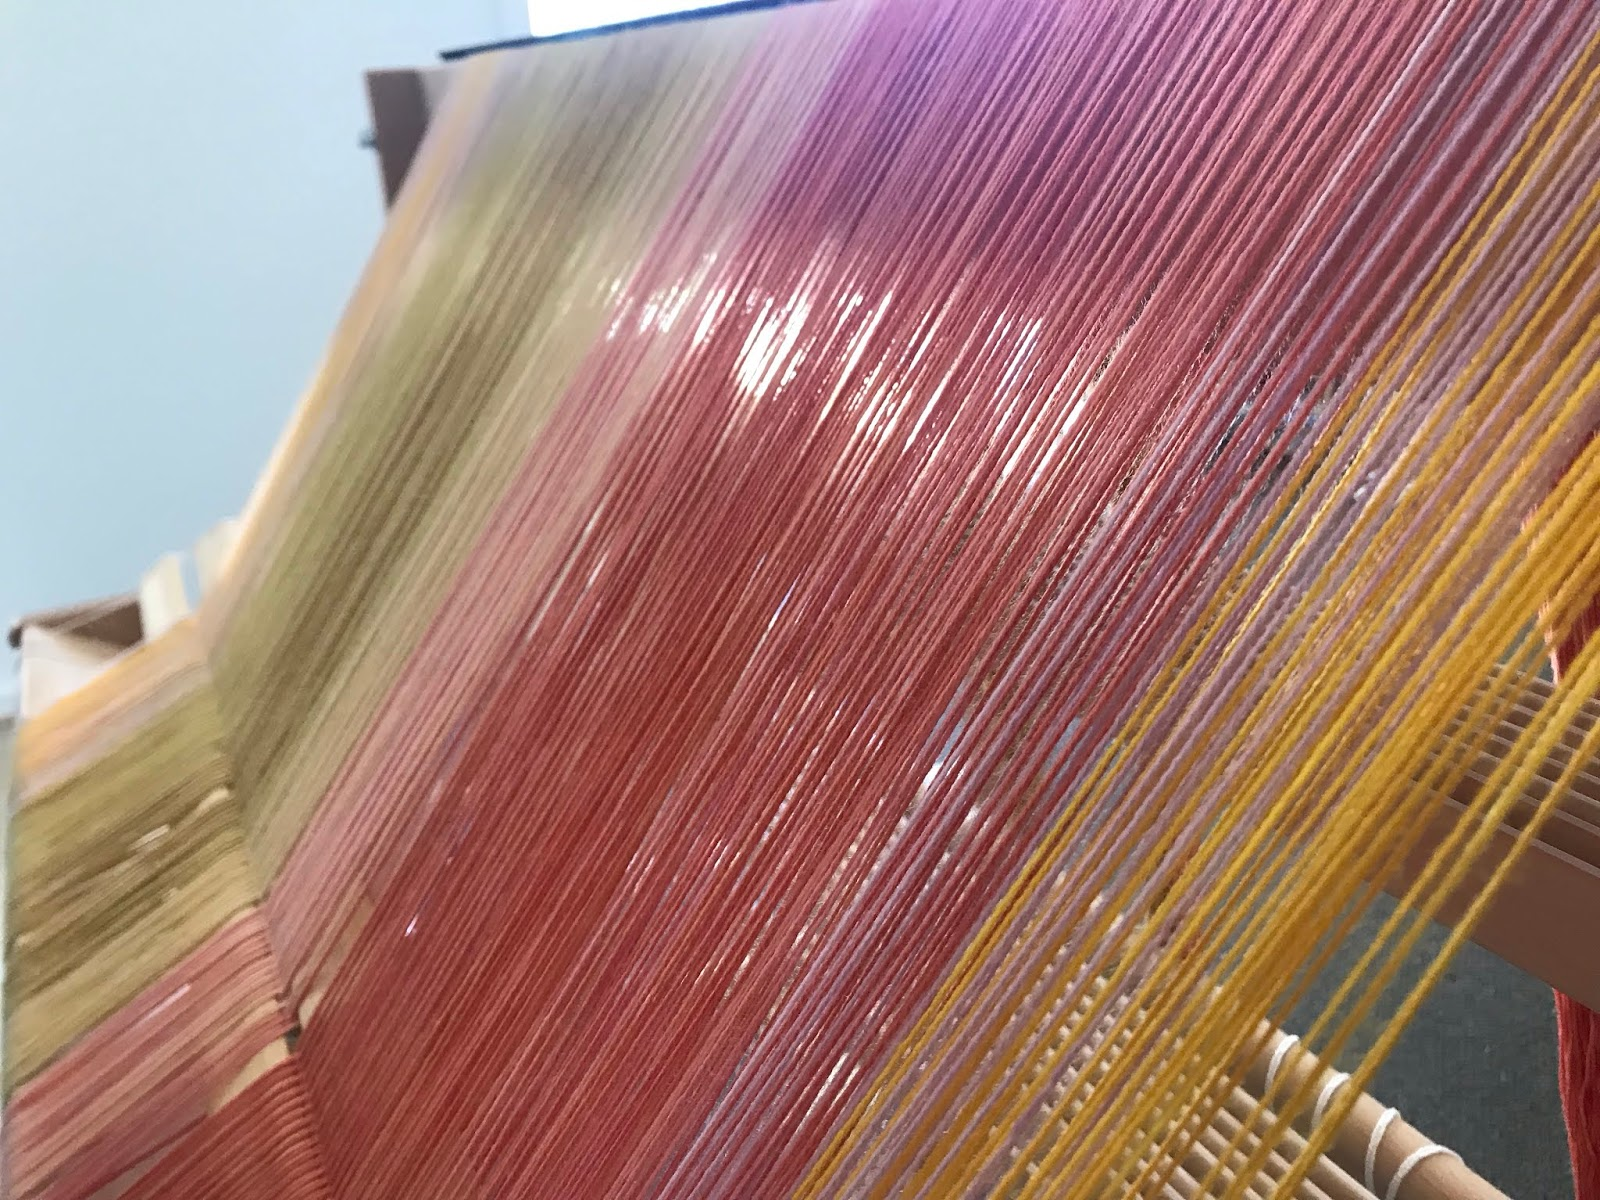 A warp going into a raddle. The yarn takes up the entire image, with pinks in the foreground and yellows in the background.